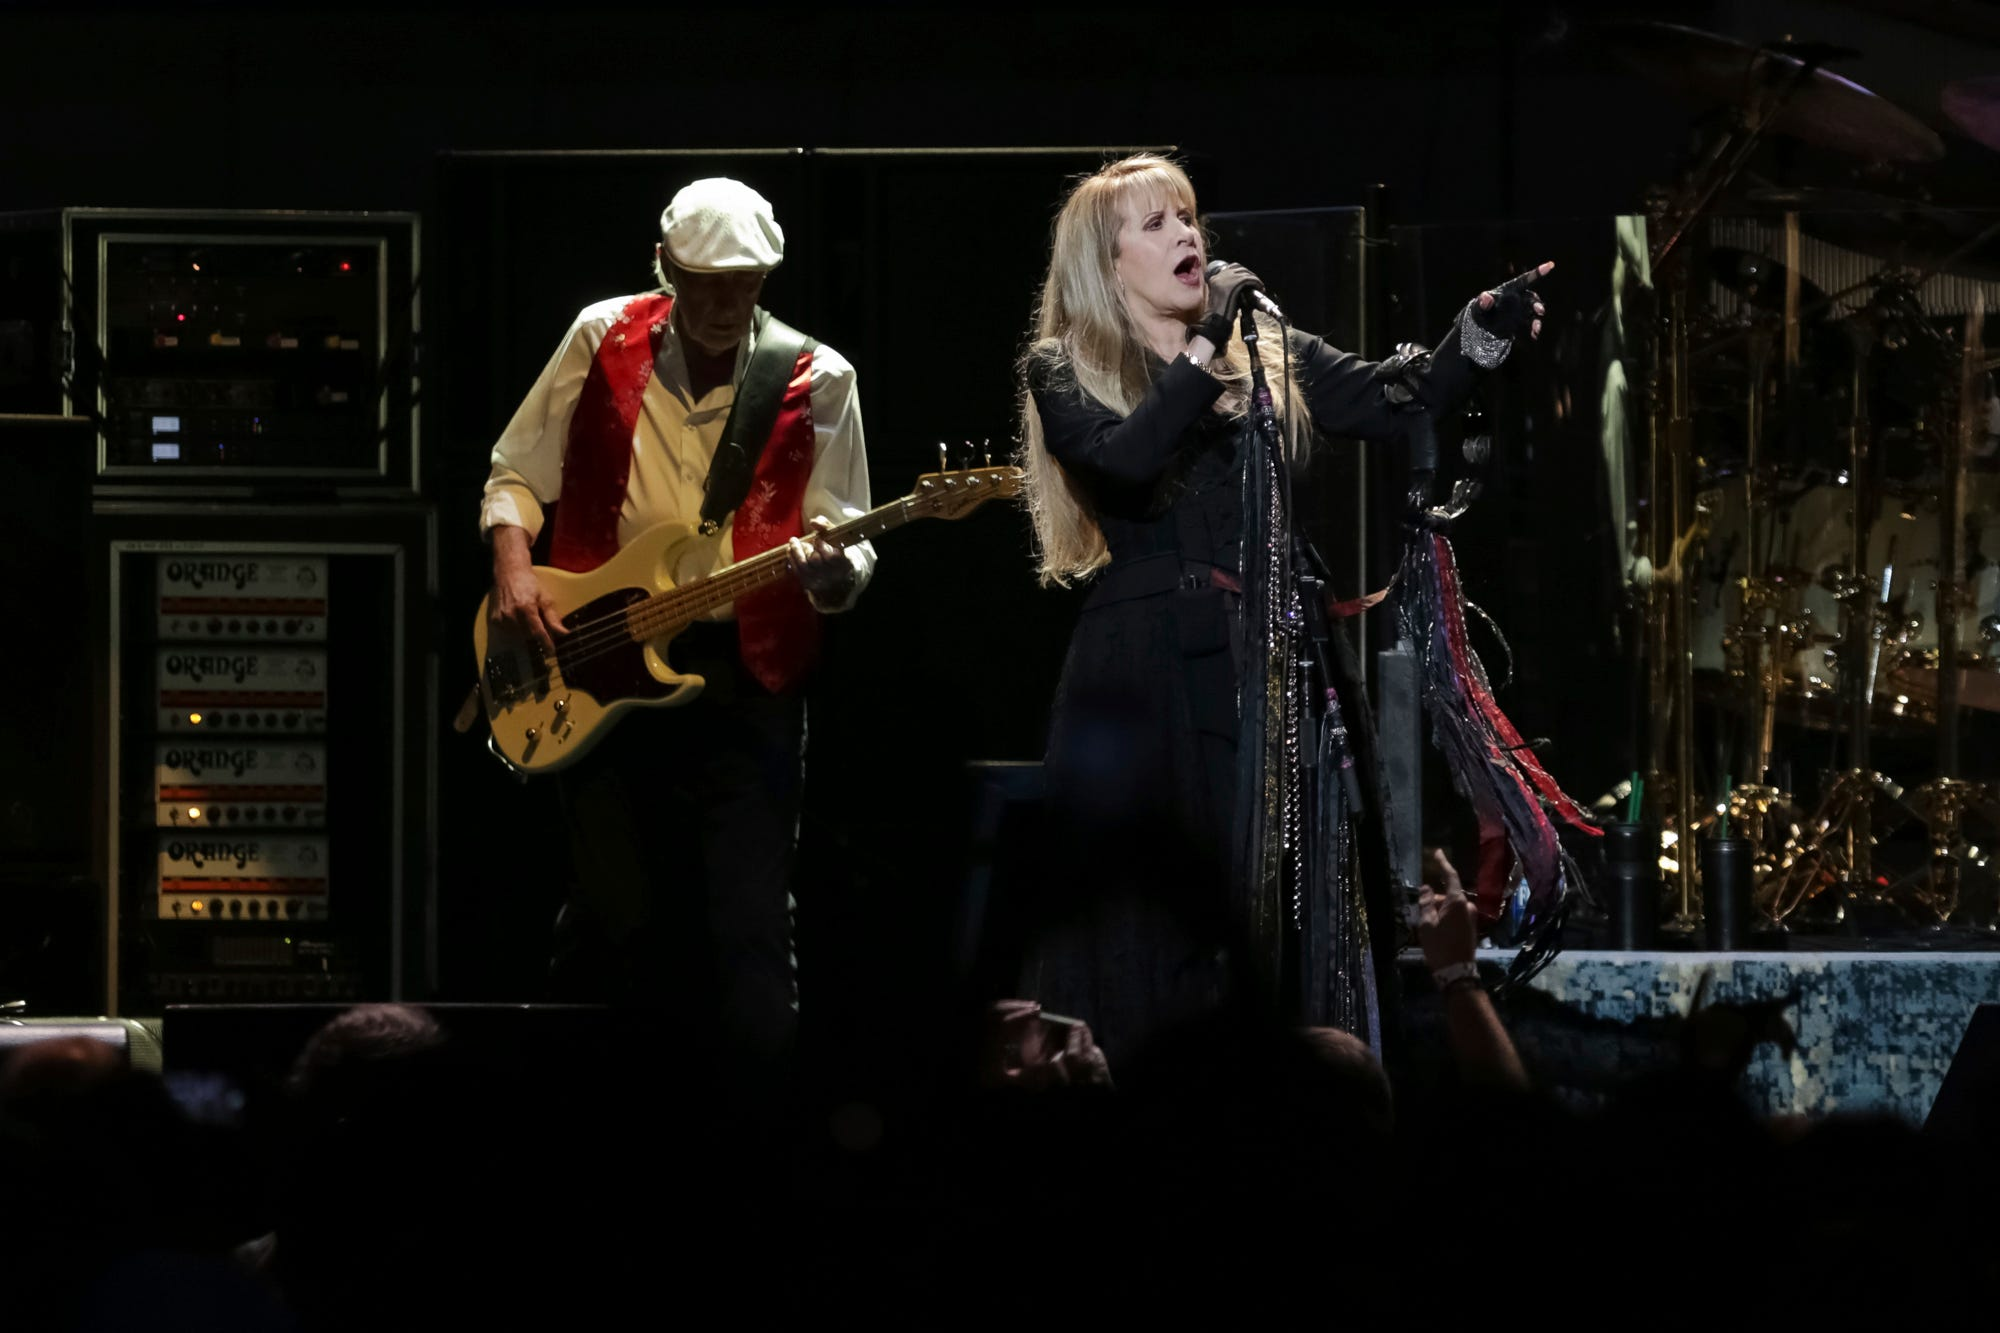 Jazz Fest replacement, Part 2: Rolling Stones' sub Fleetwood Mac pull out due to illness